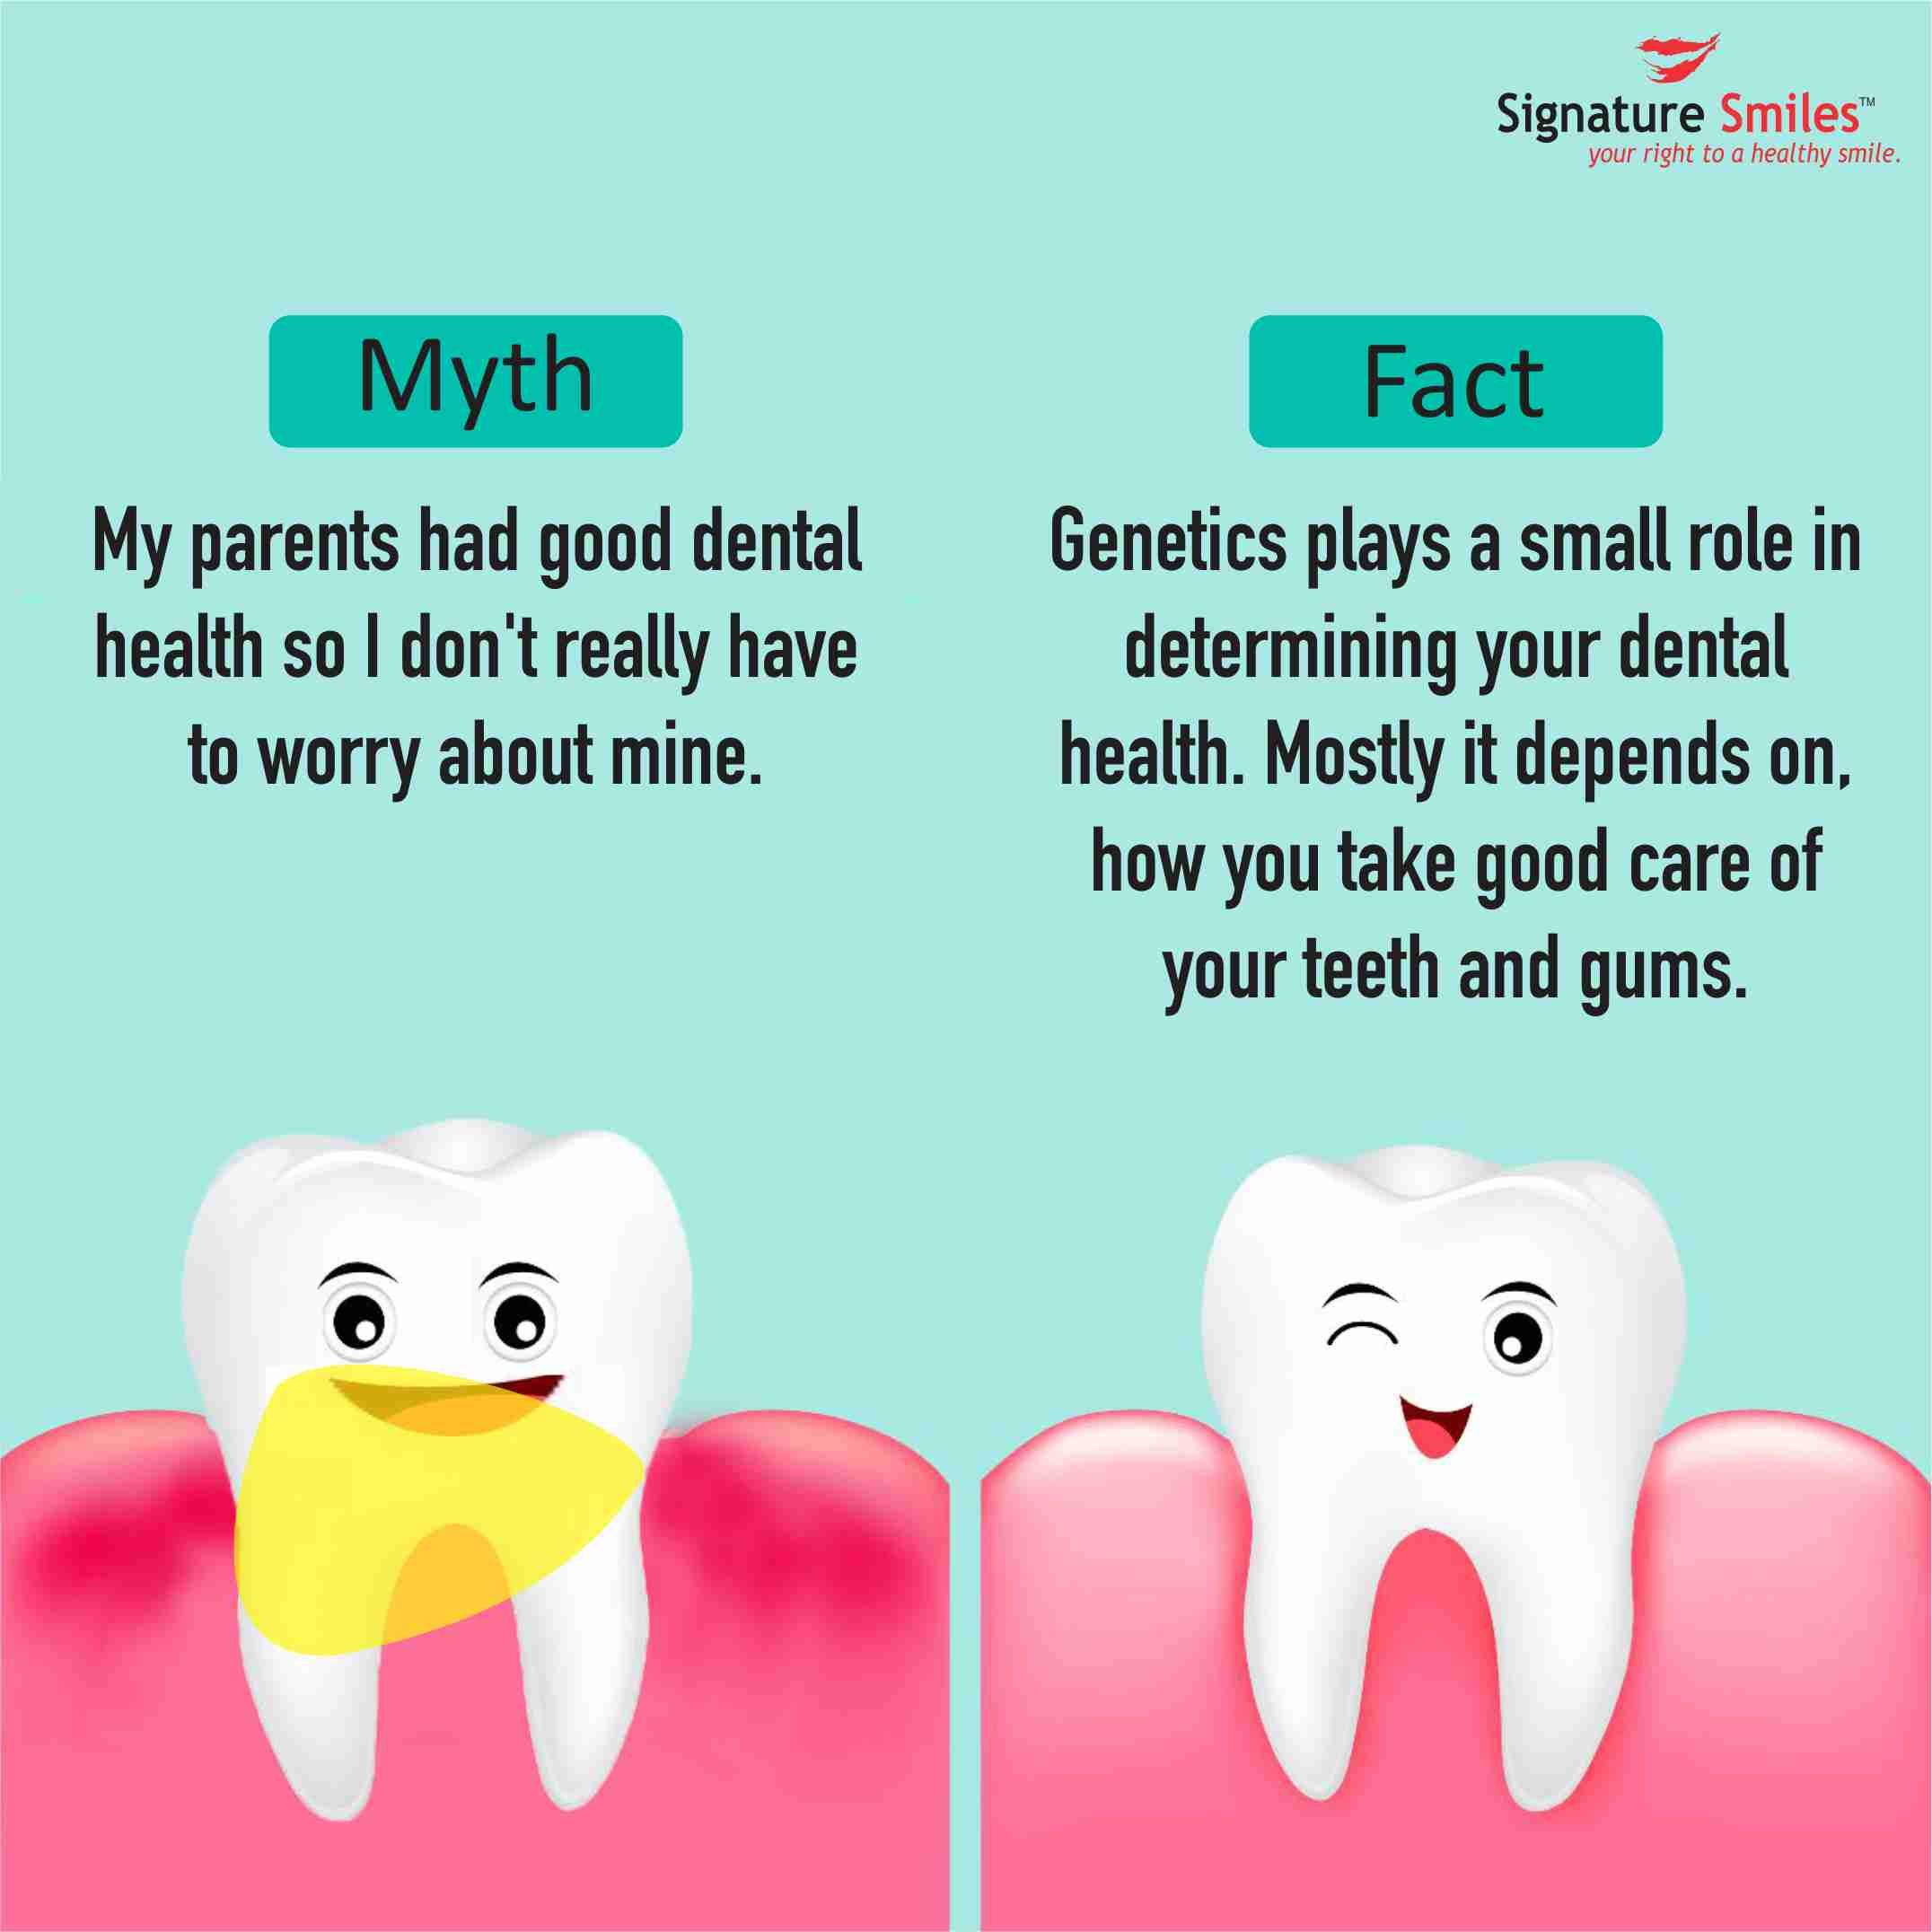 Your Dental Health depends on how you take care of it.